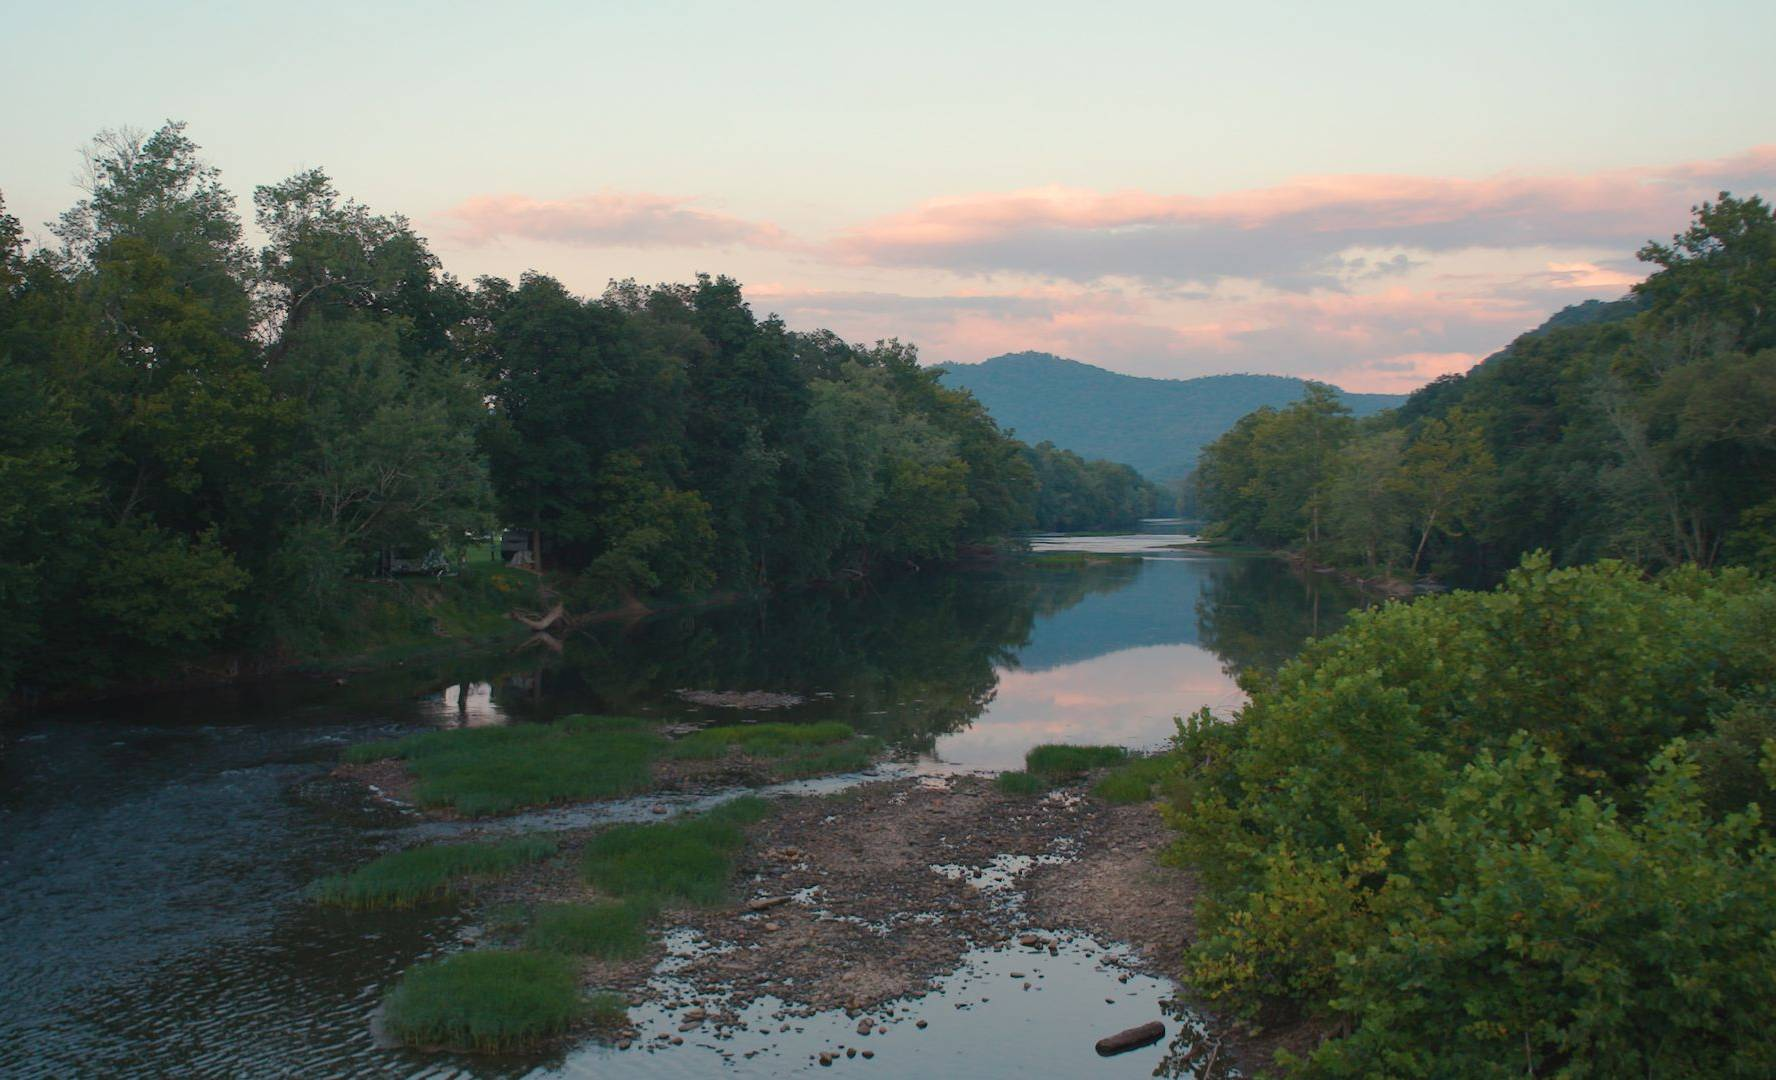 view of the Greenbriar river in WV in late afternoon